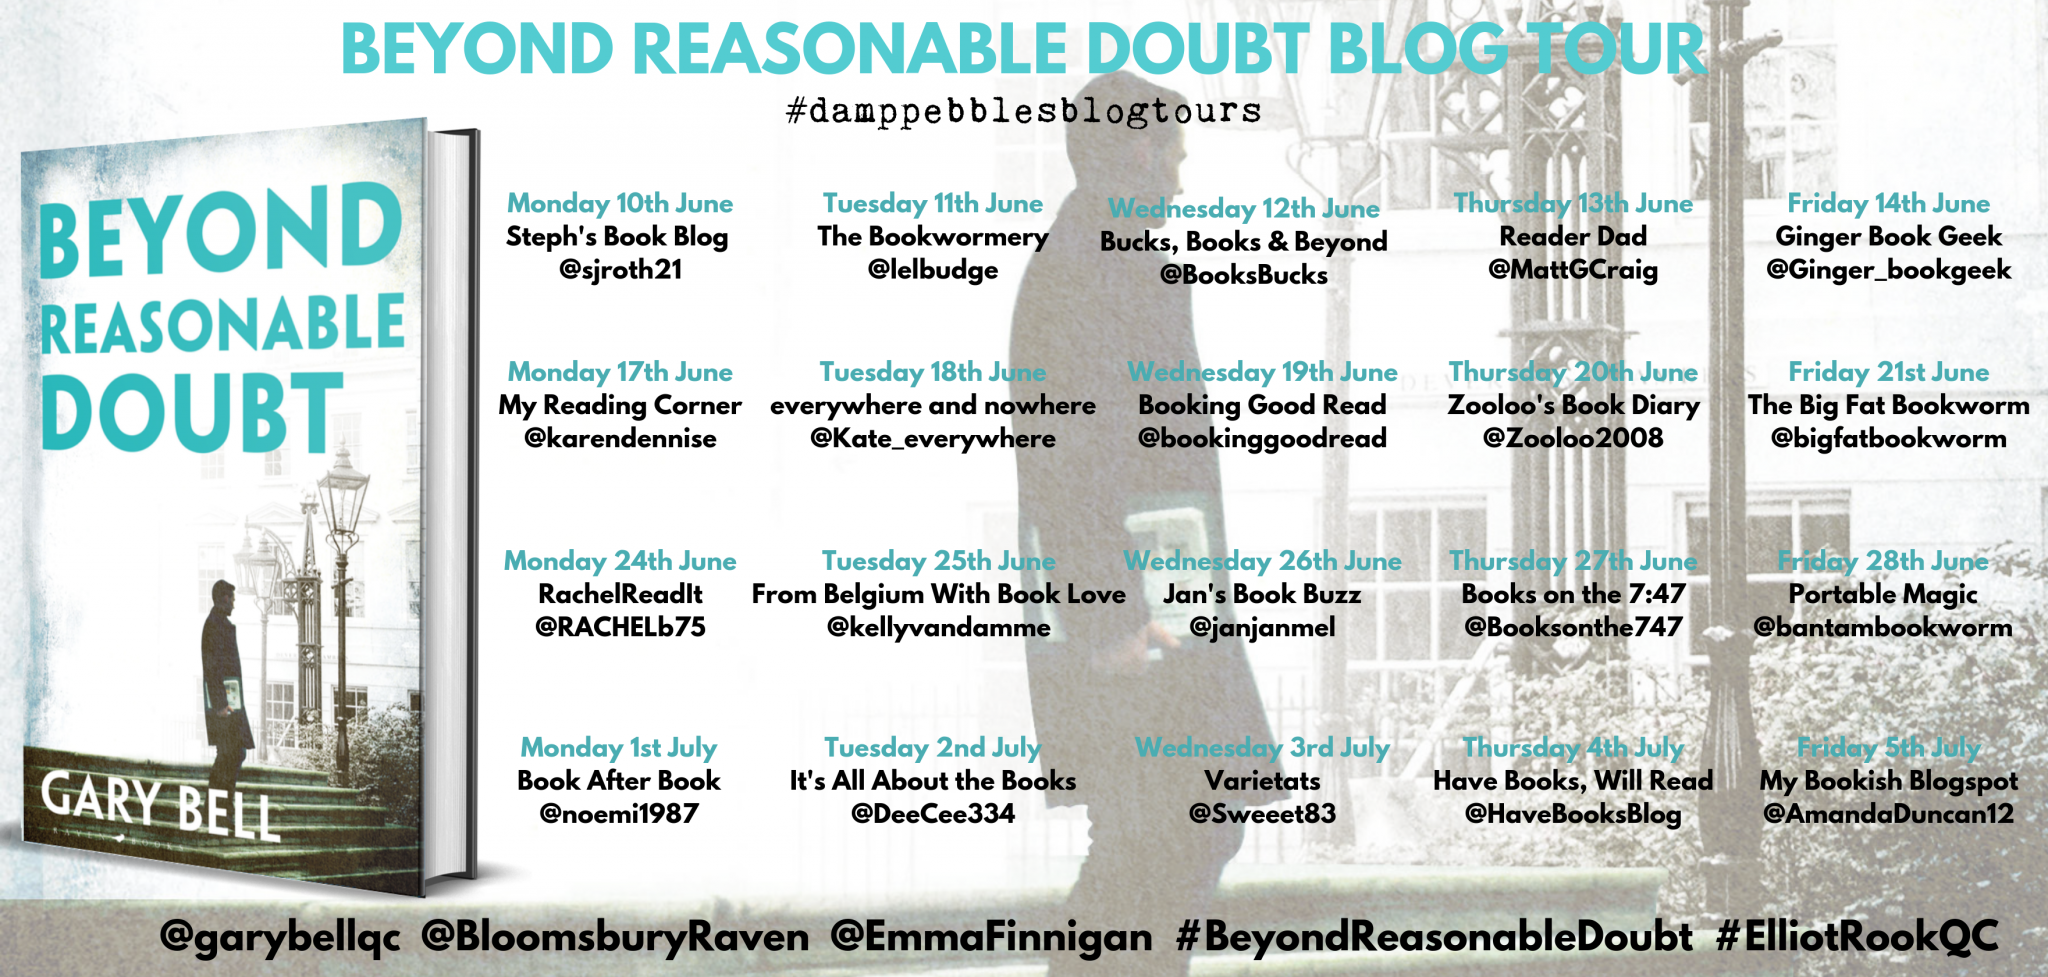 ***#BookReview of Beyond Reasonable Doubt by Gary Bell